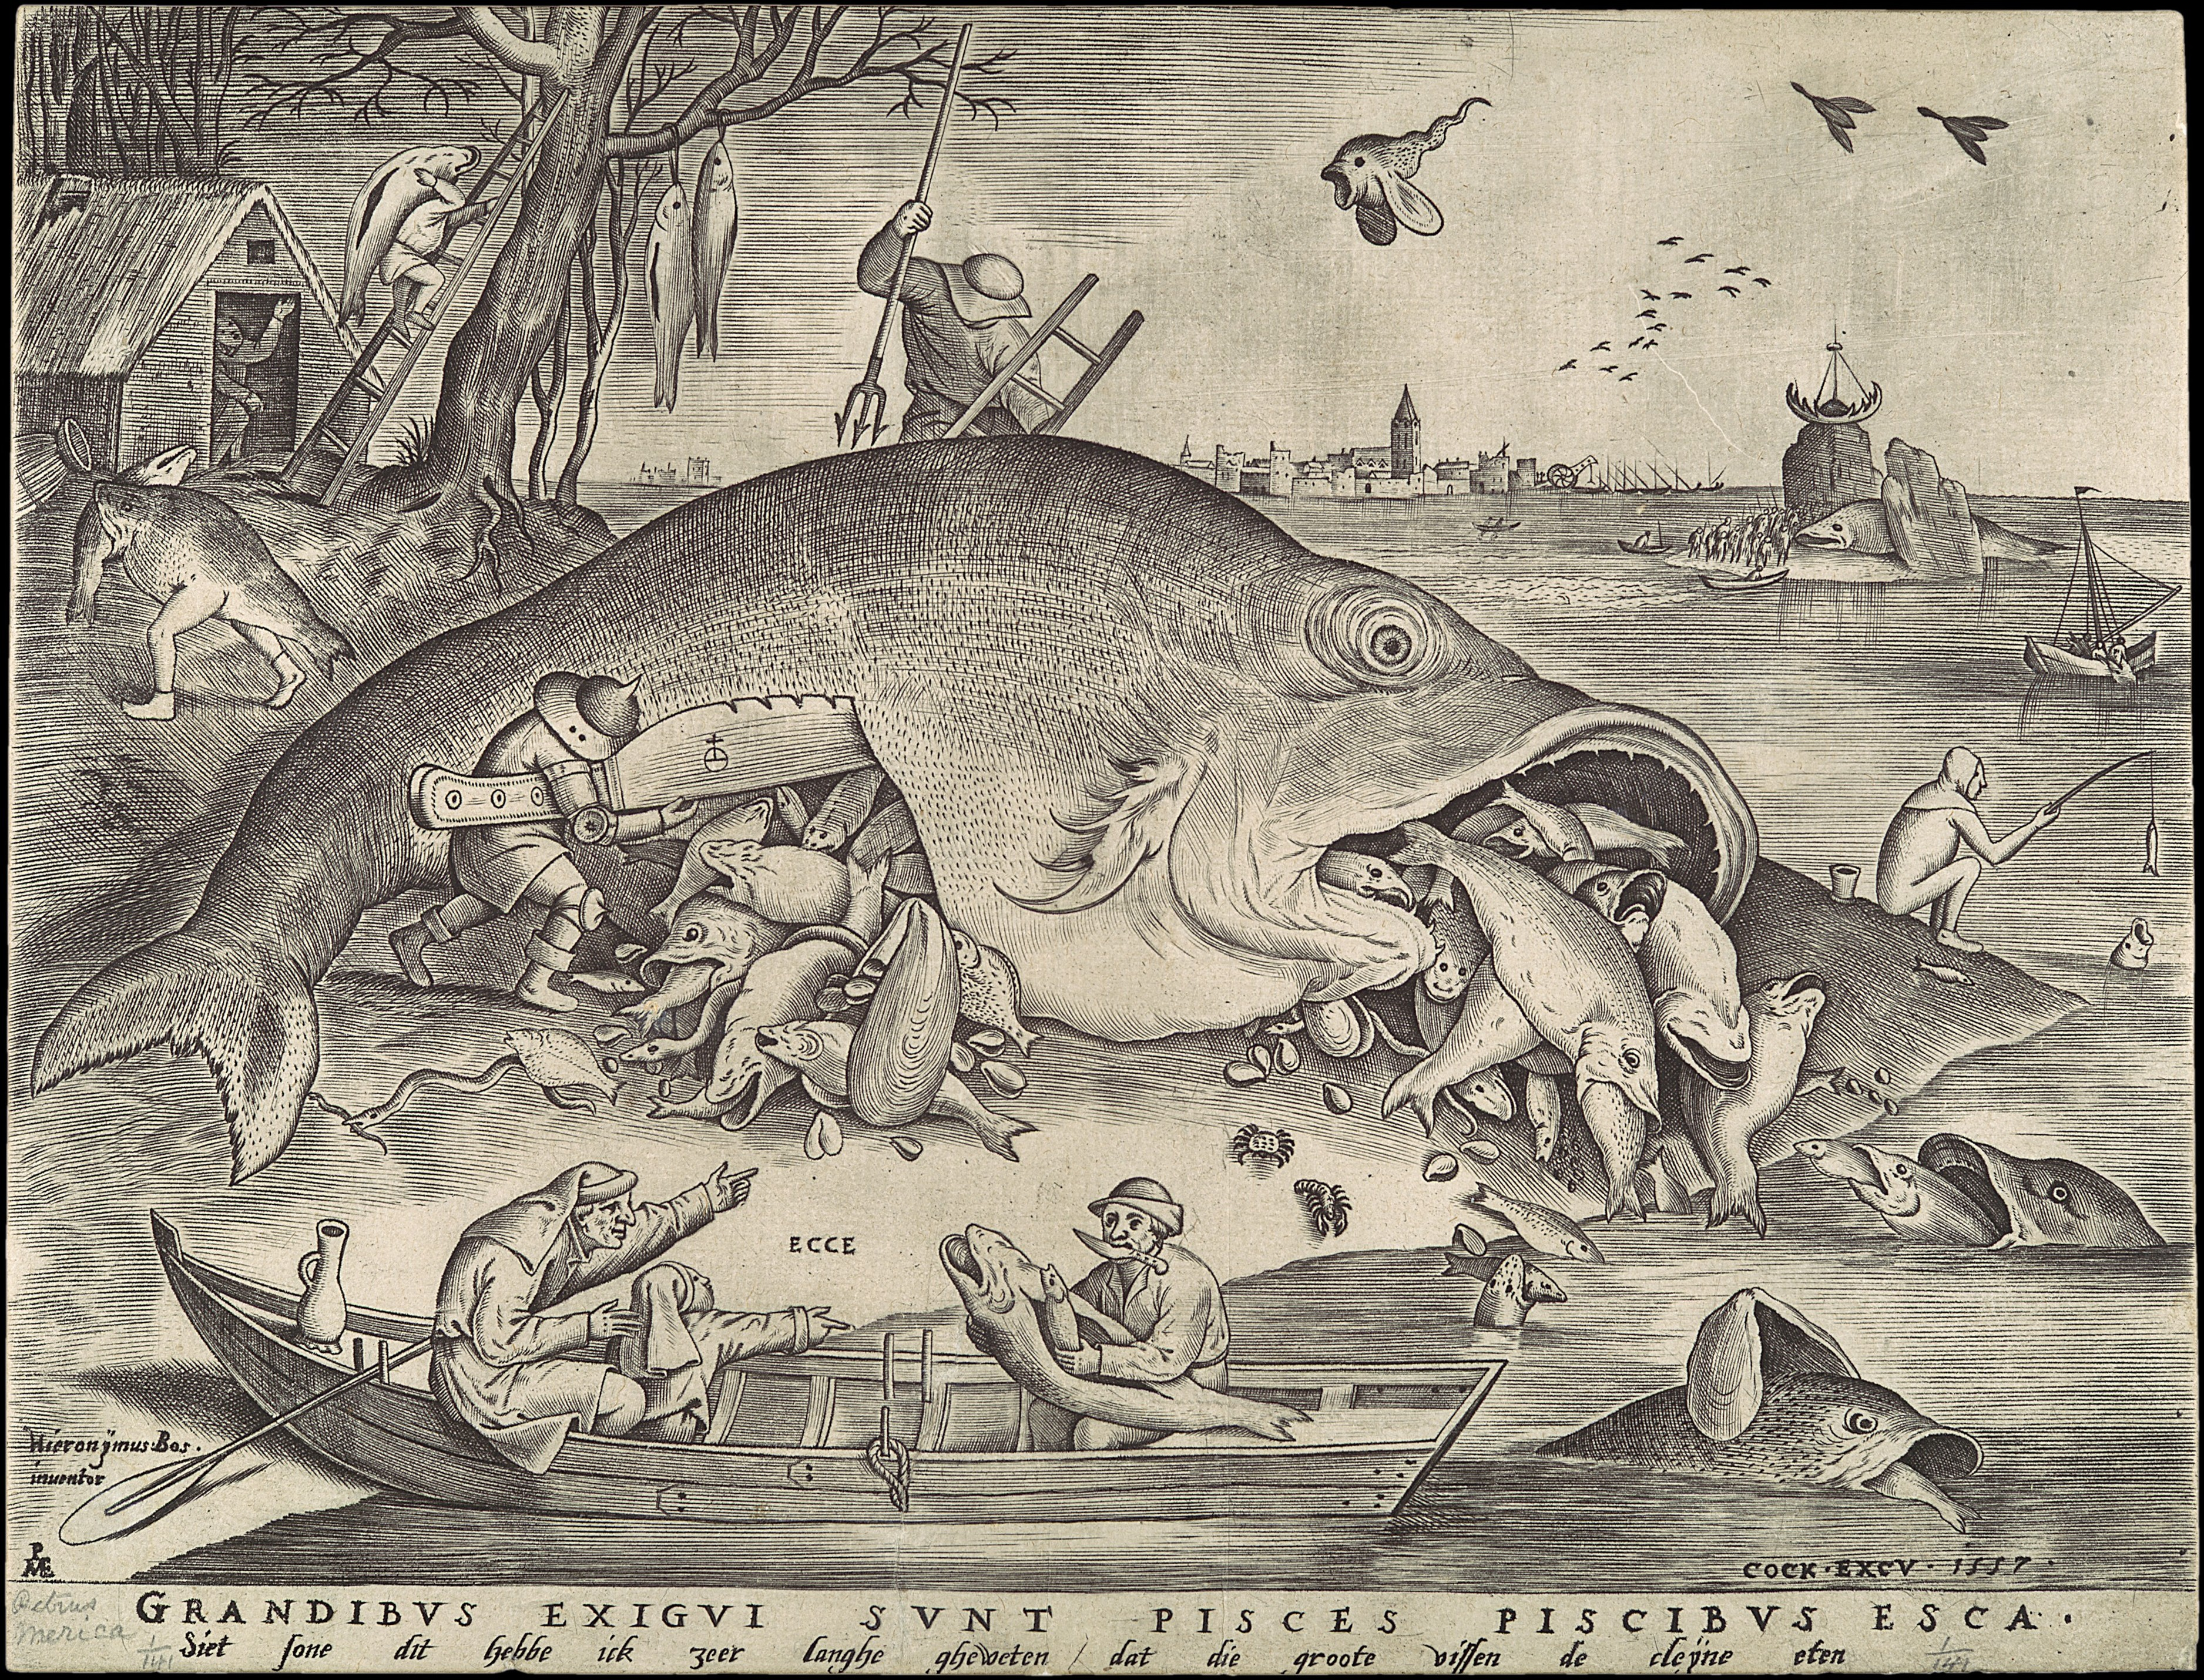 Inspiring art late middle ages off topic kingdom come for The big fish